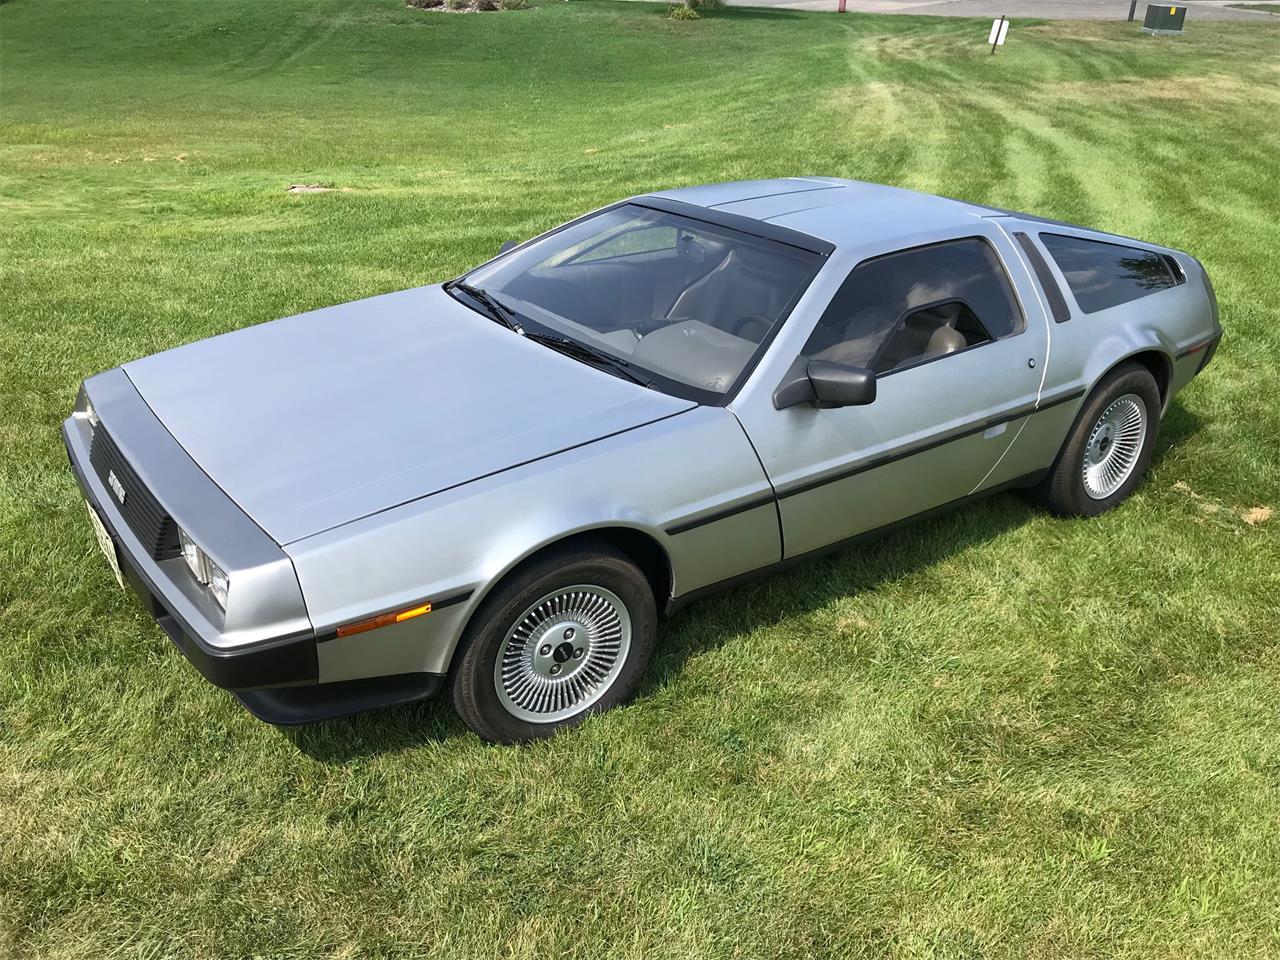 Large Picture of '81 DMC-12 - $42,000.00 Offered by a Private Seller - OG4Z